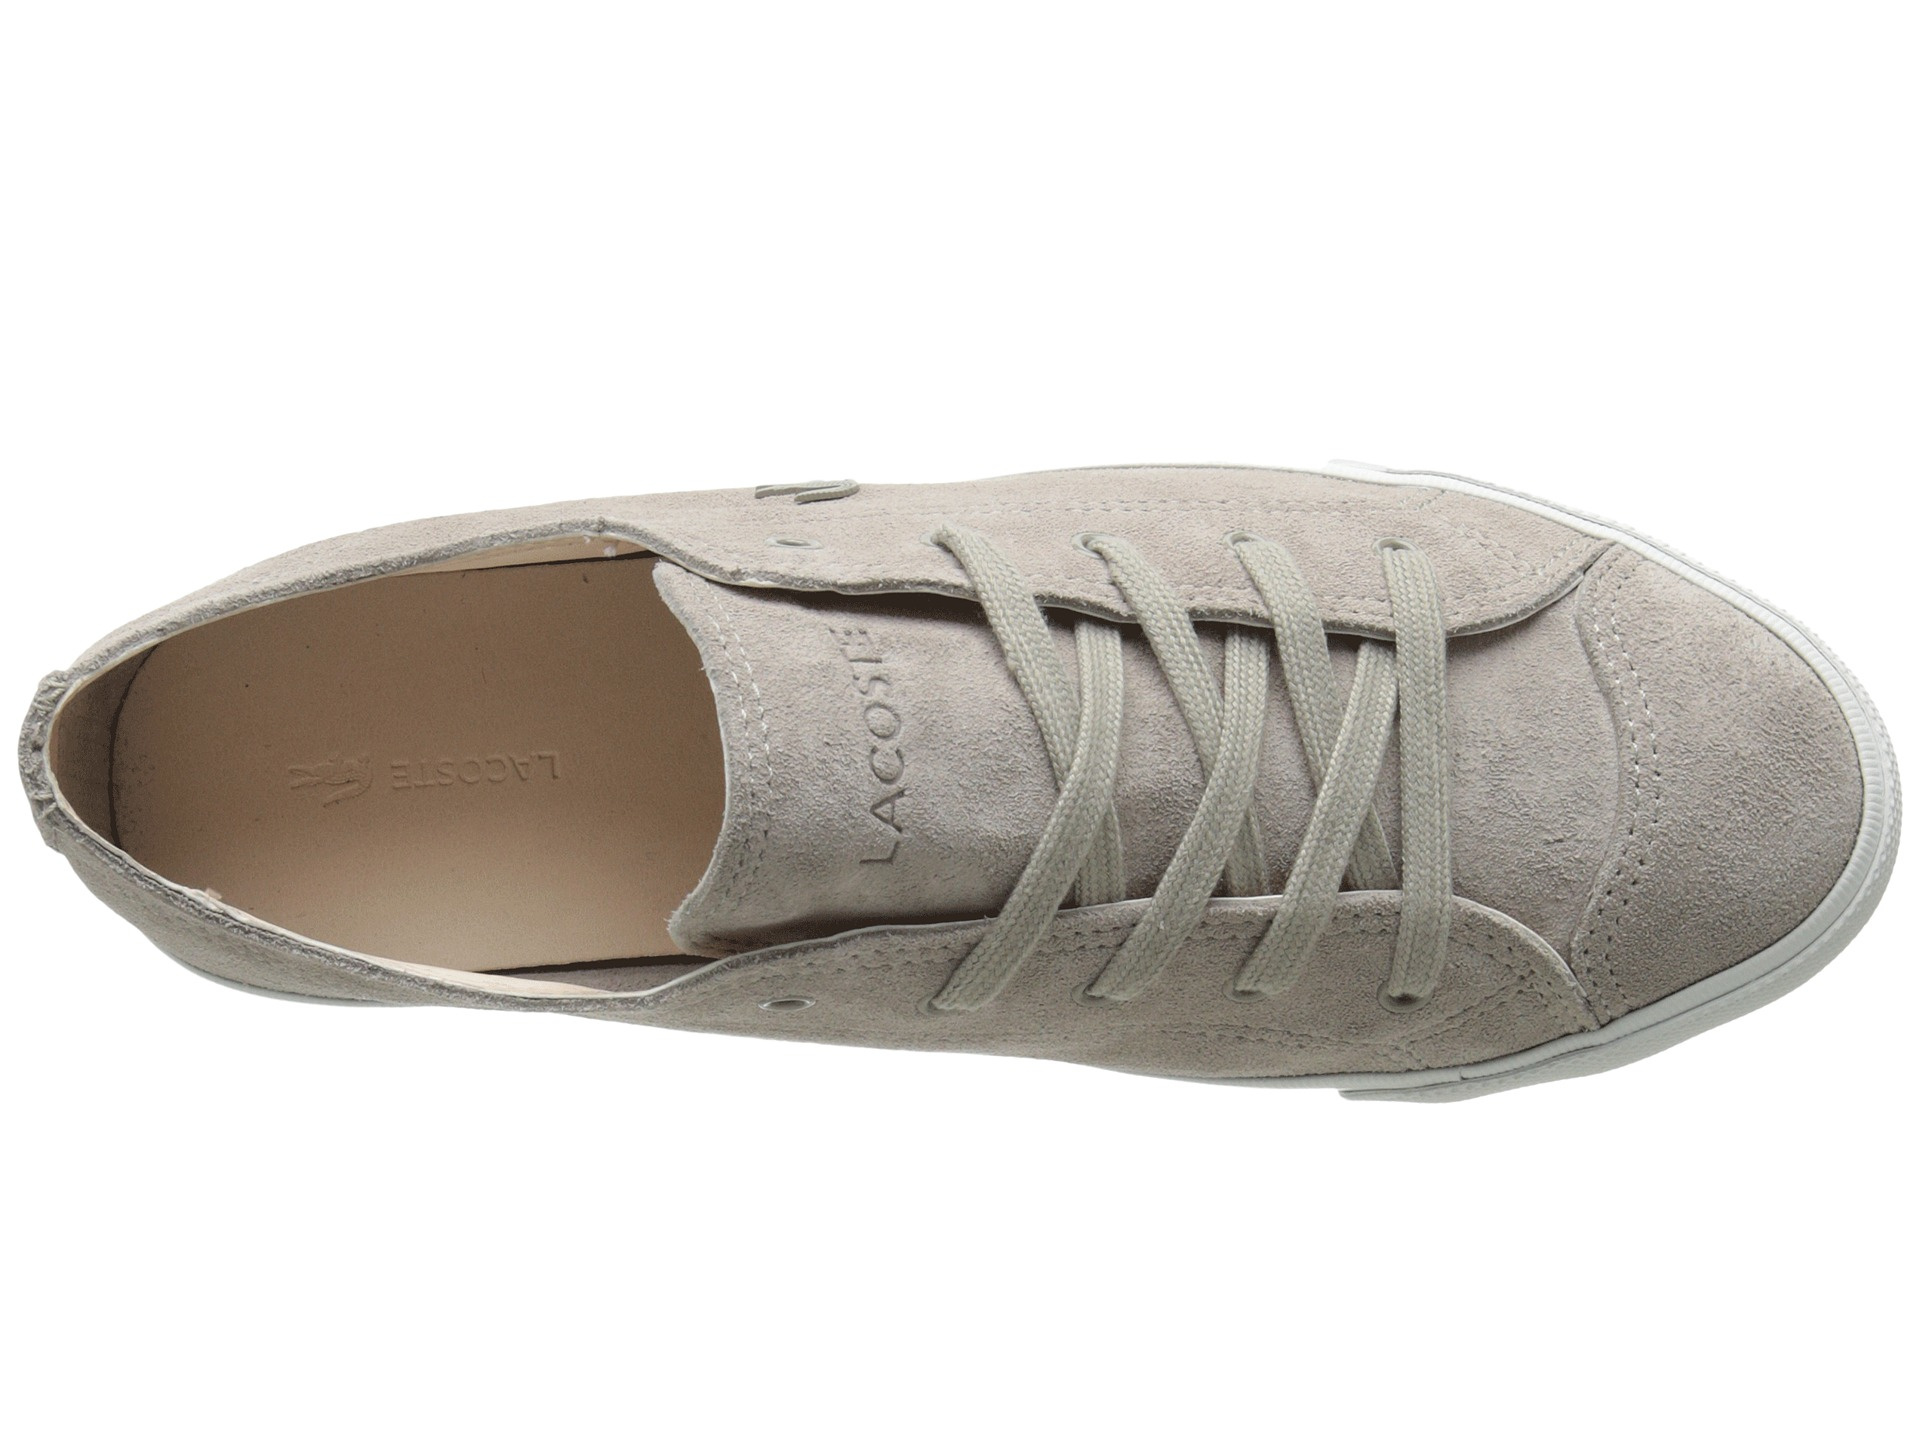 Womens lacoste sandals - Gallery